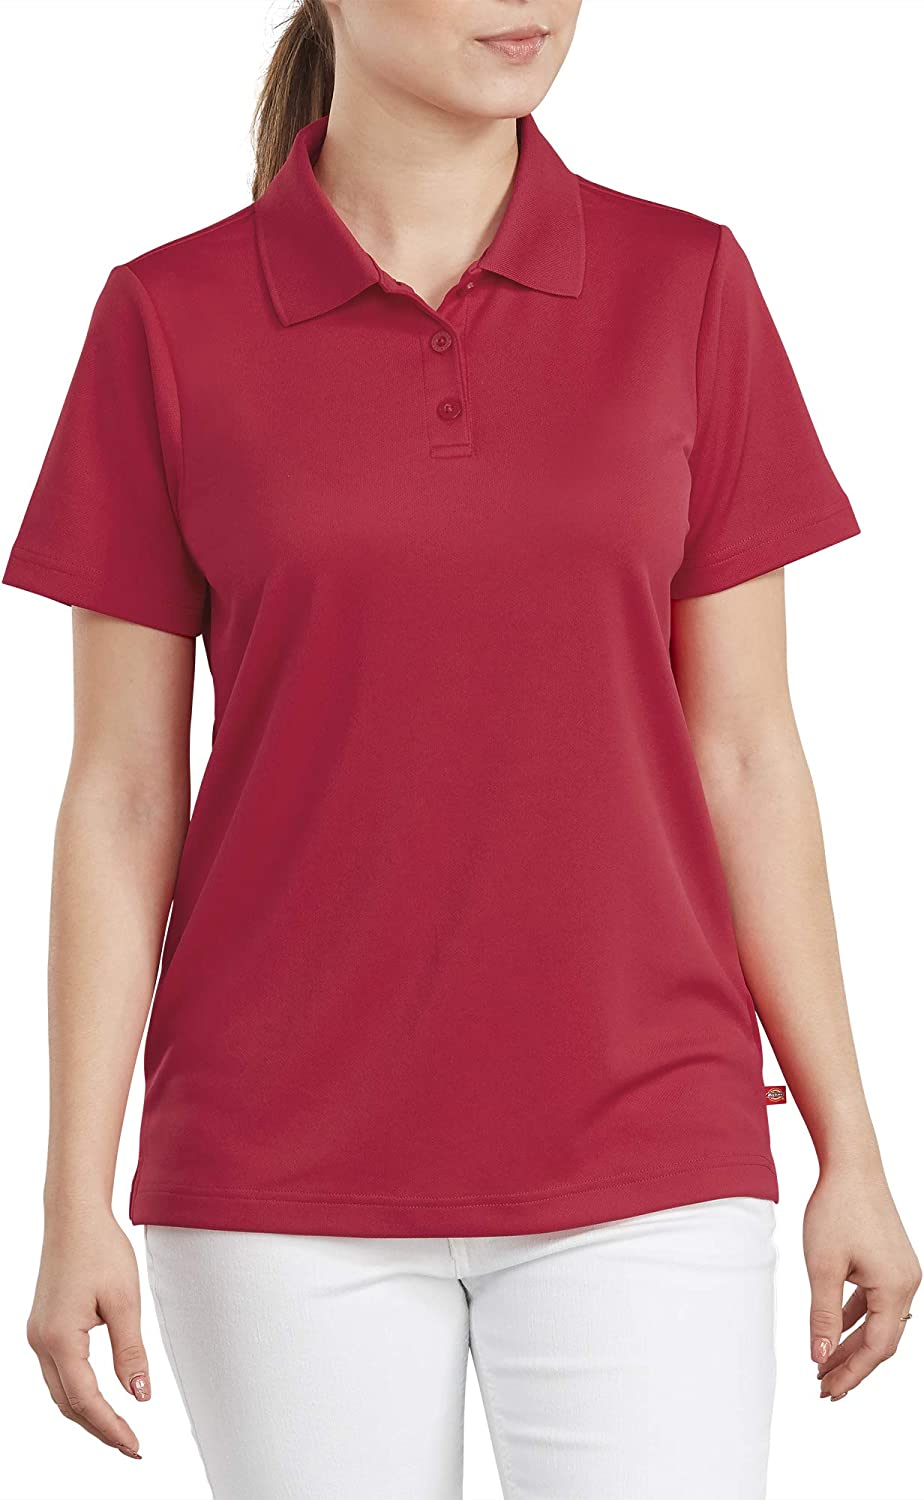 Dickies Women's Performance Polo with Silvadur Antimicrobial Protection